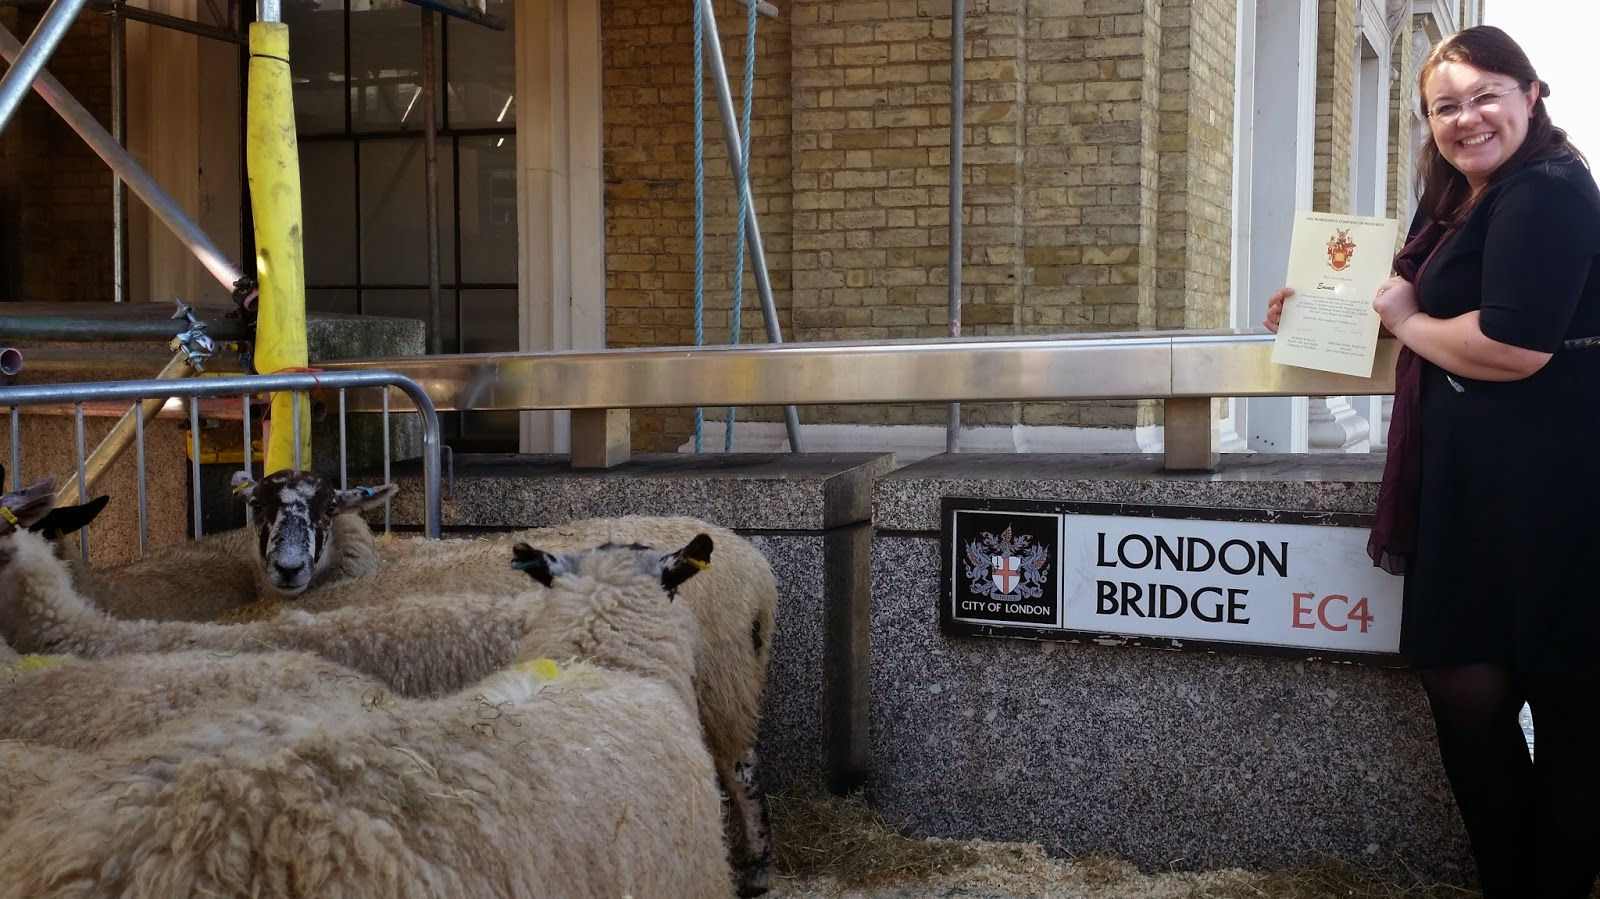 The day I drove Sheep across London Bridge - Adventures of a London Kiwi